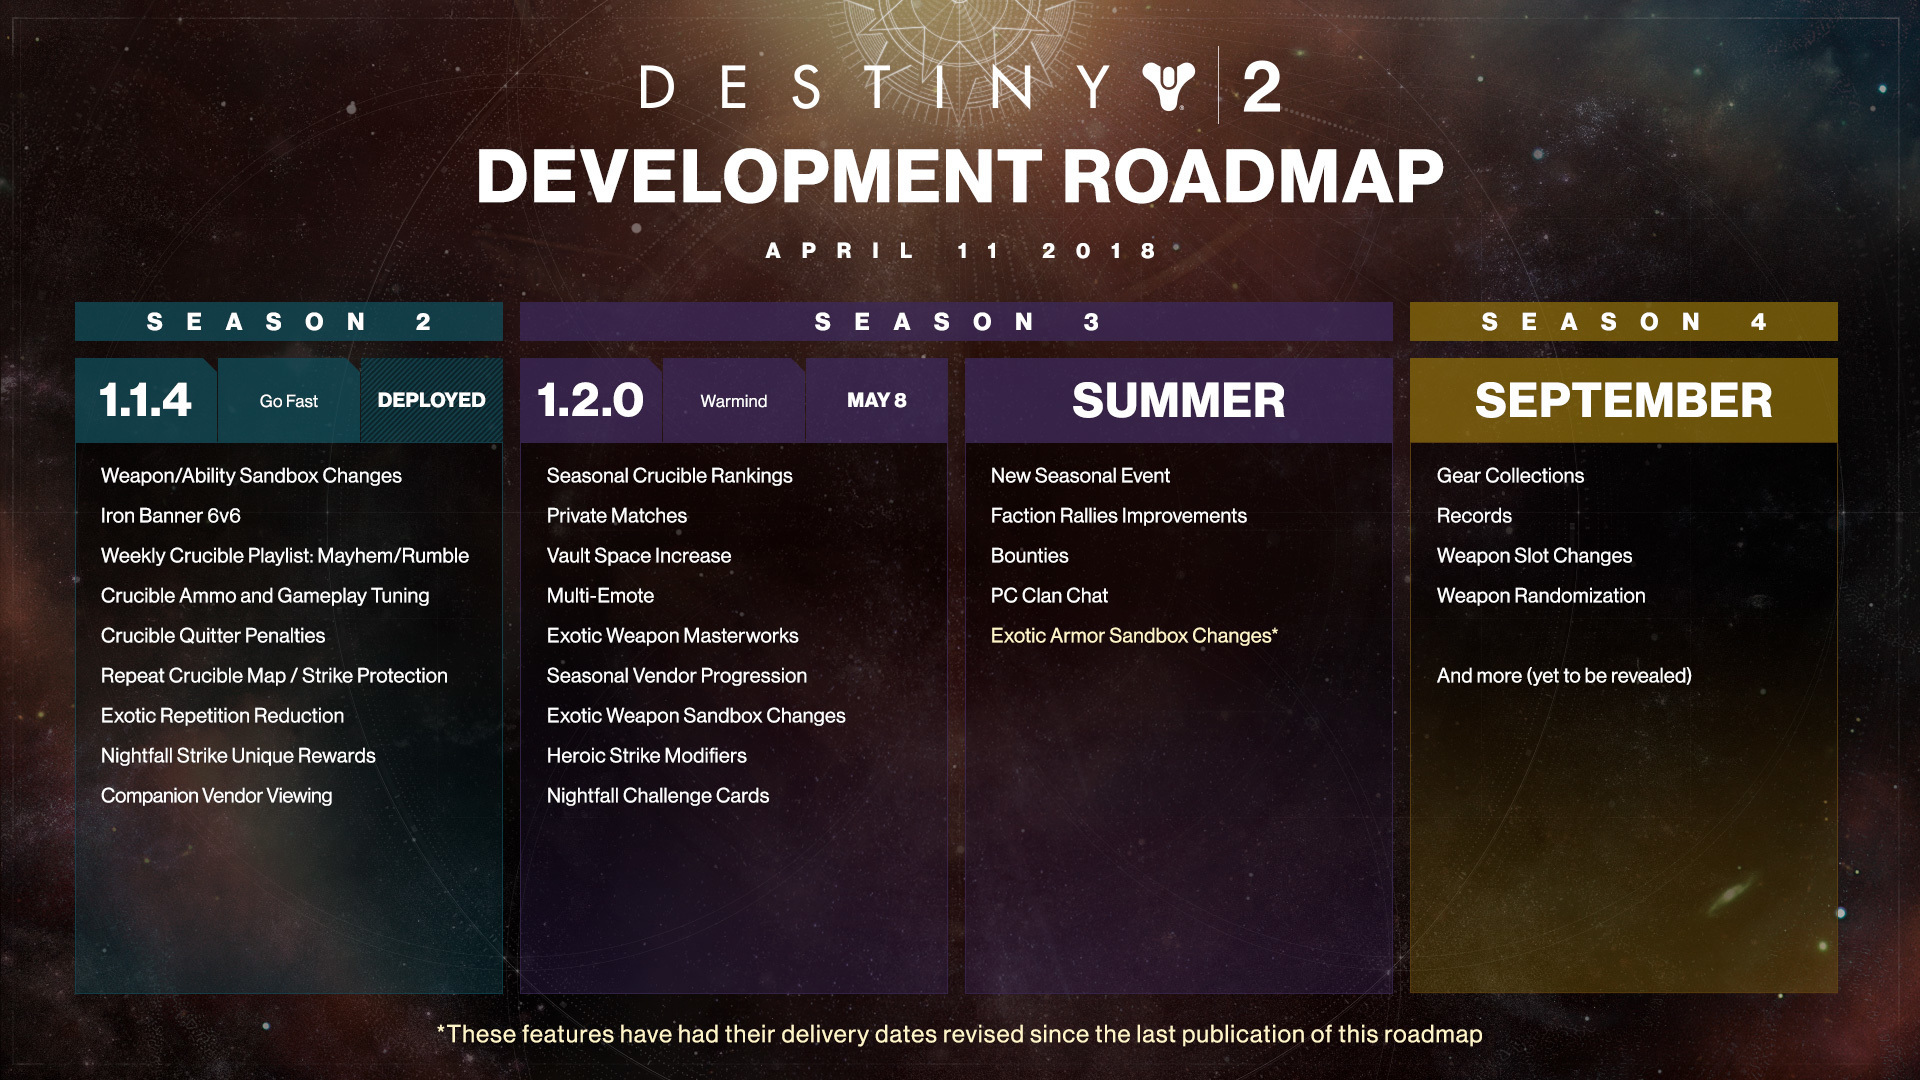 D2 Development Roadmap 4 10 3